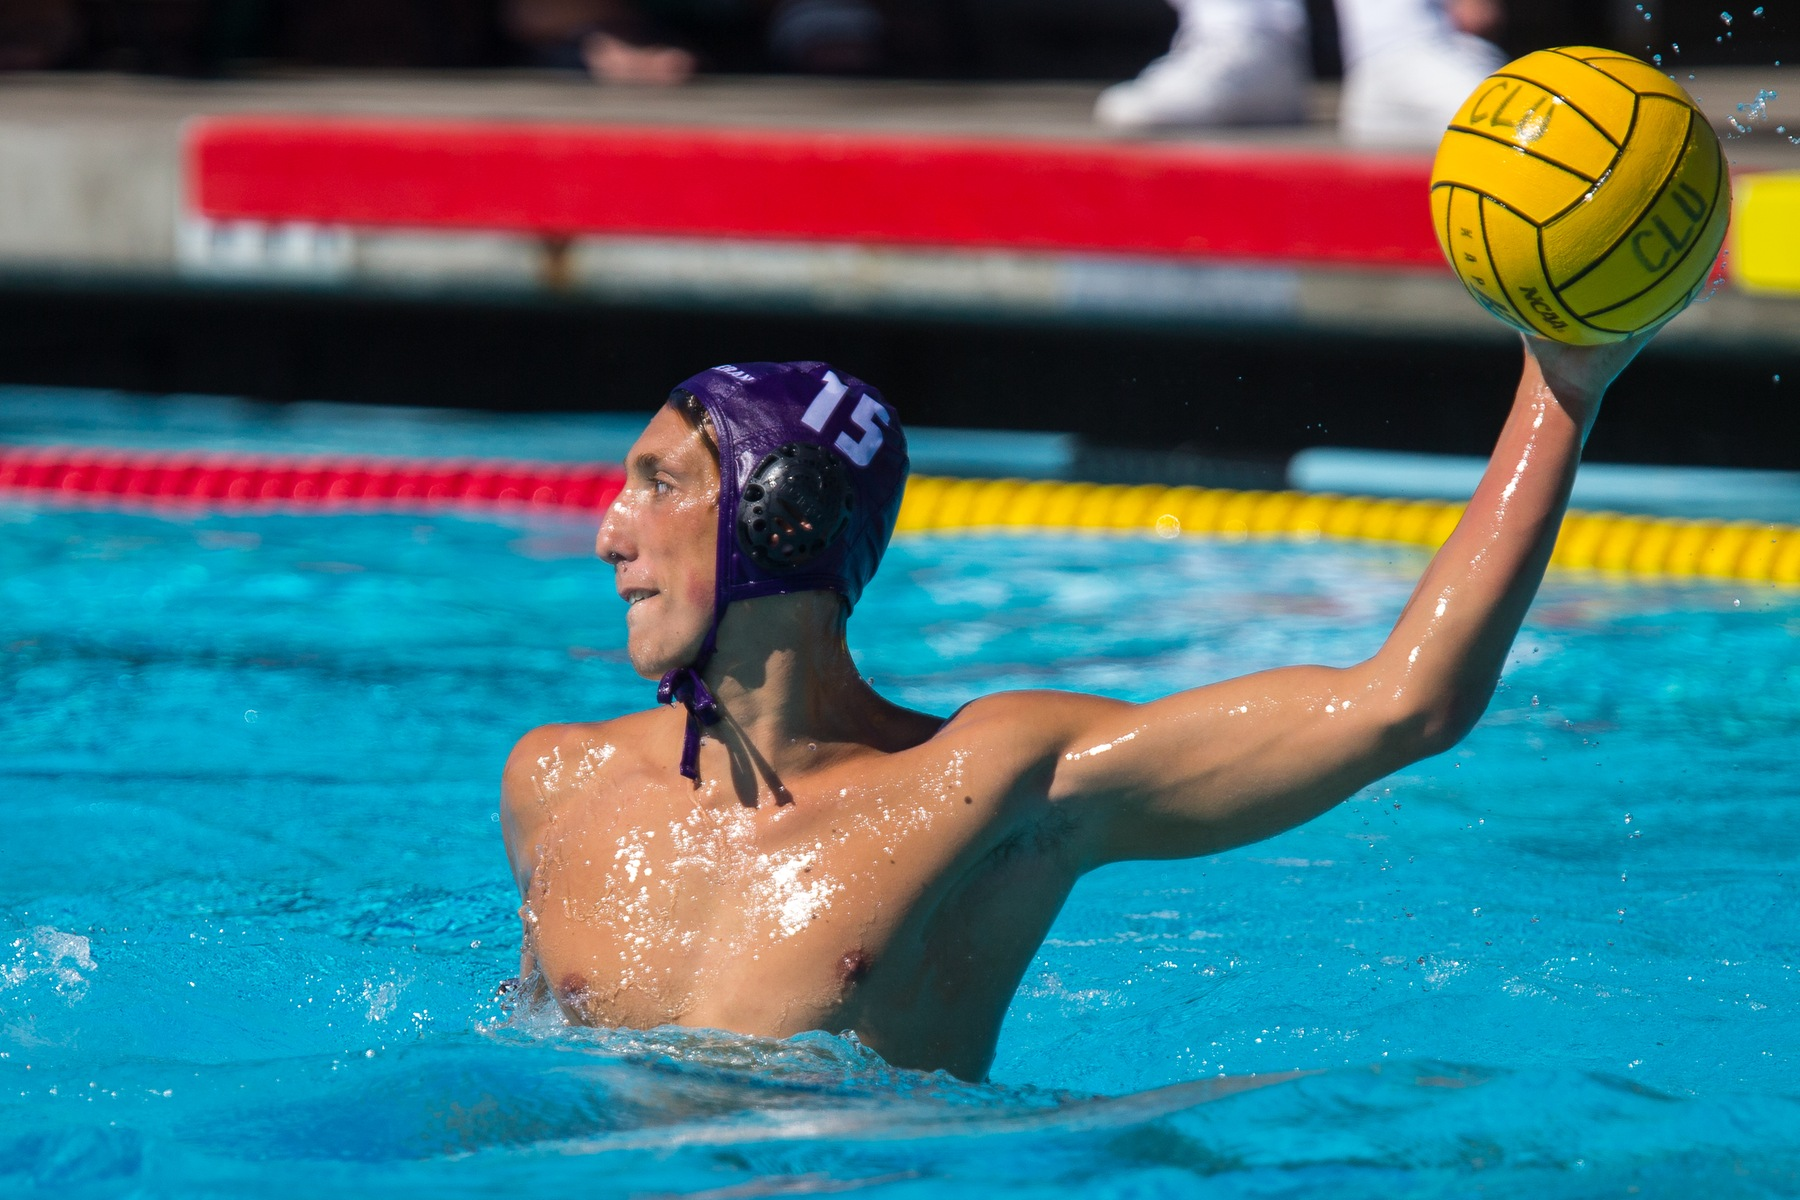 Ben Brown scores a career-high four goals against Caltech. (Credit: Dave Donovan)